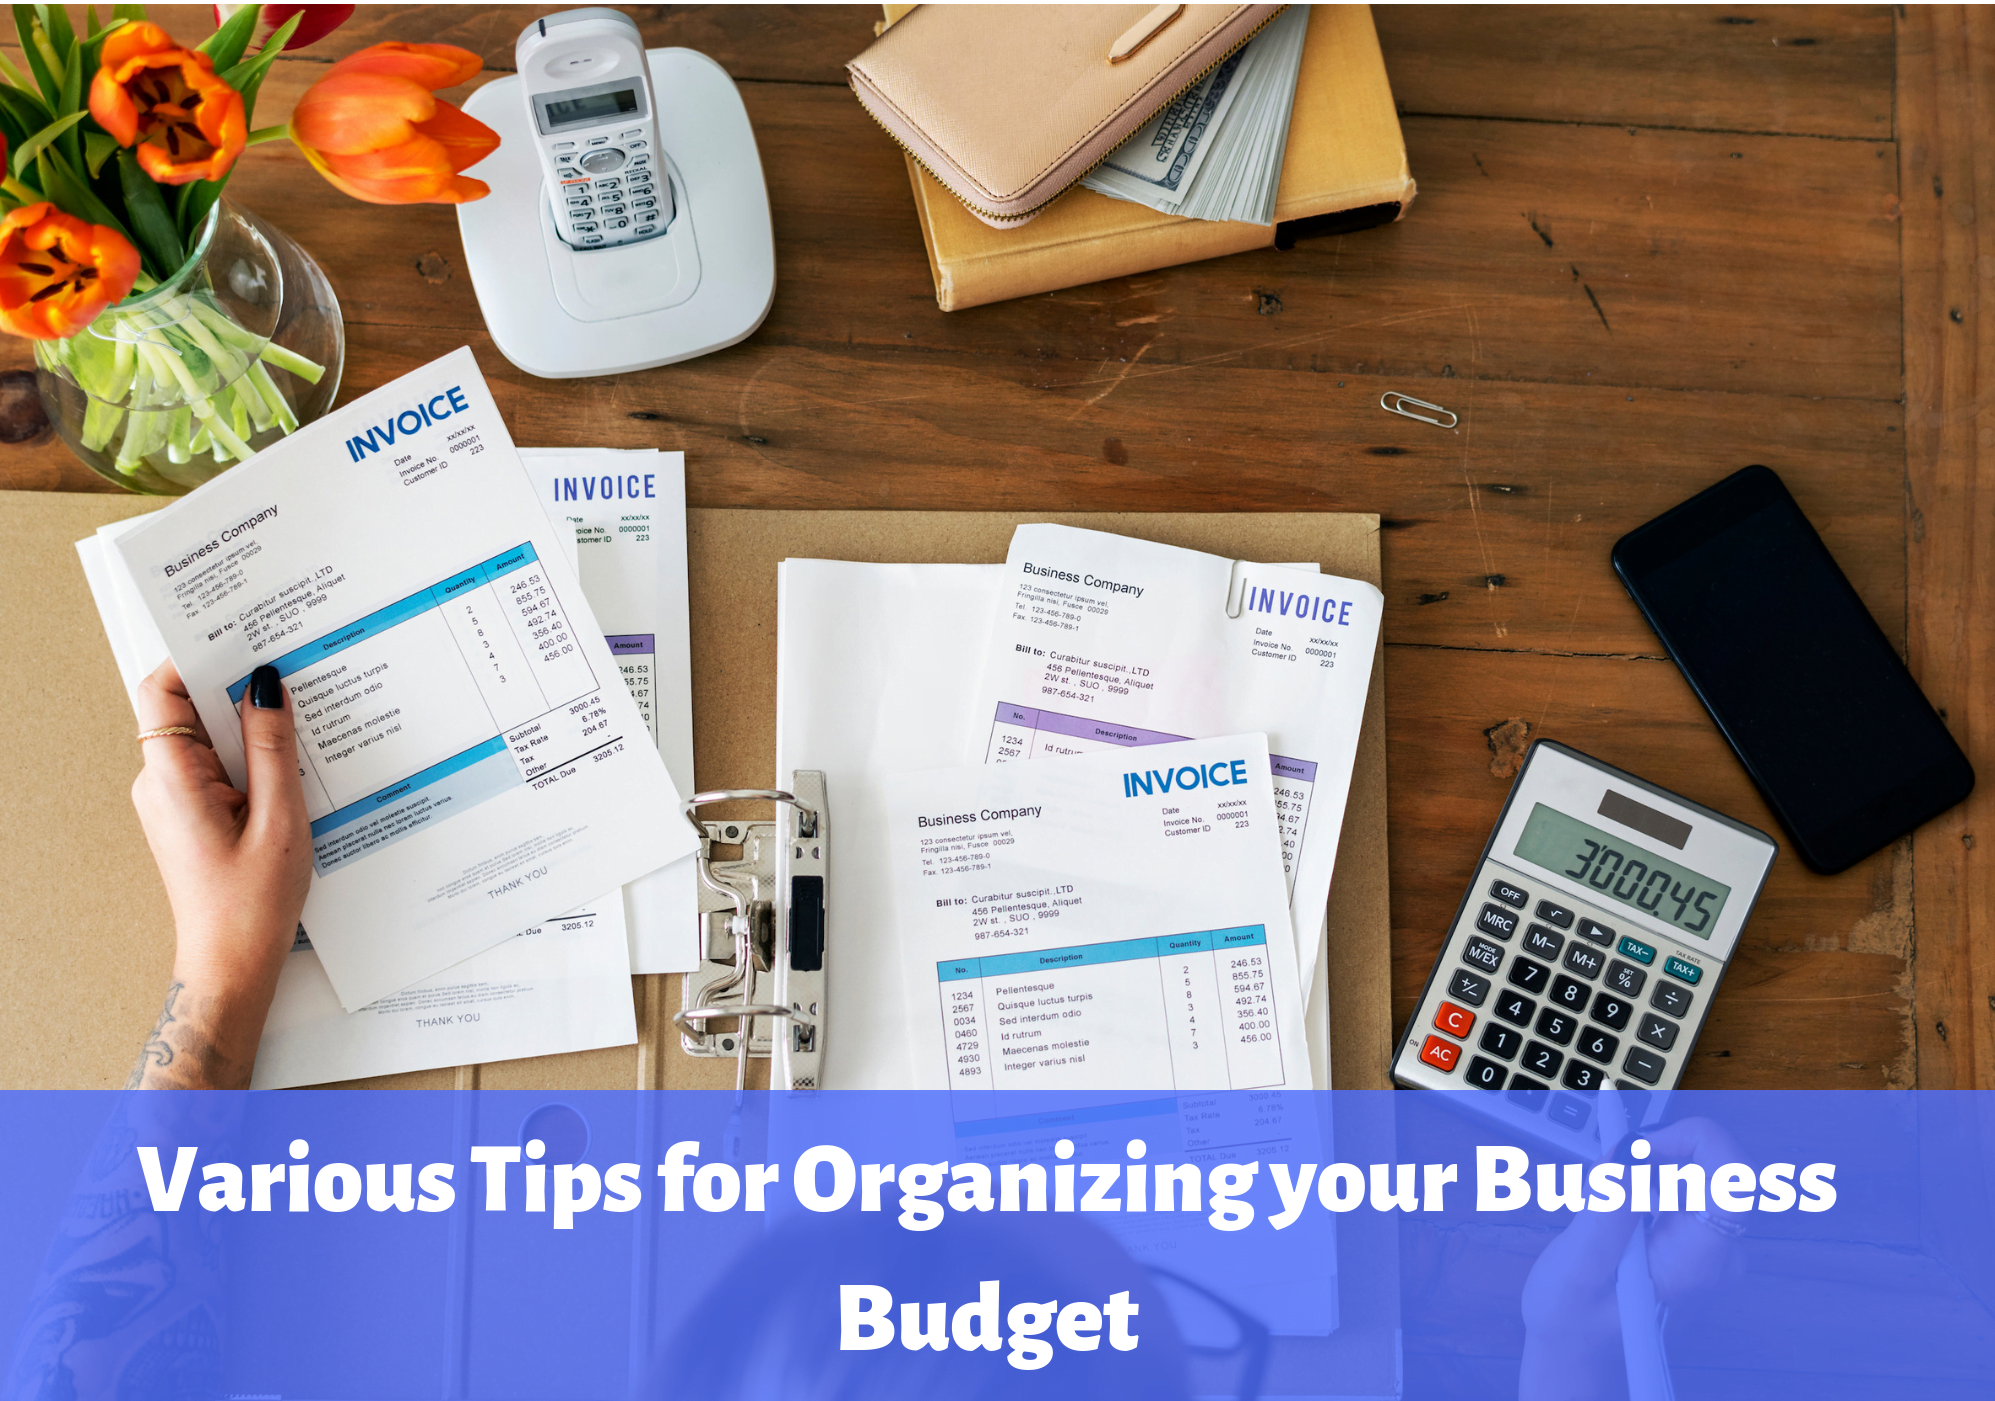 Organizing your Business Budget